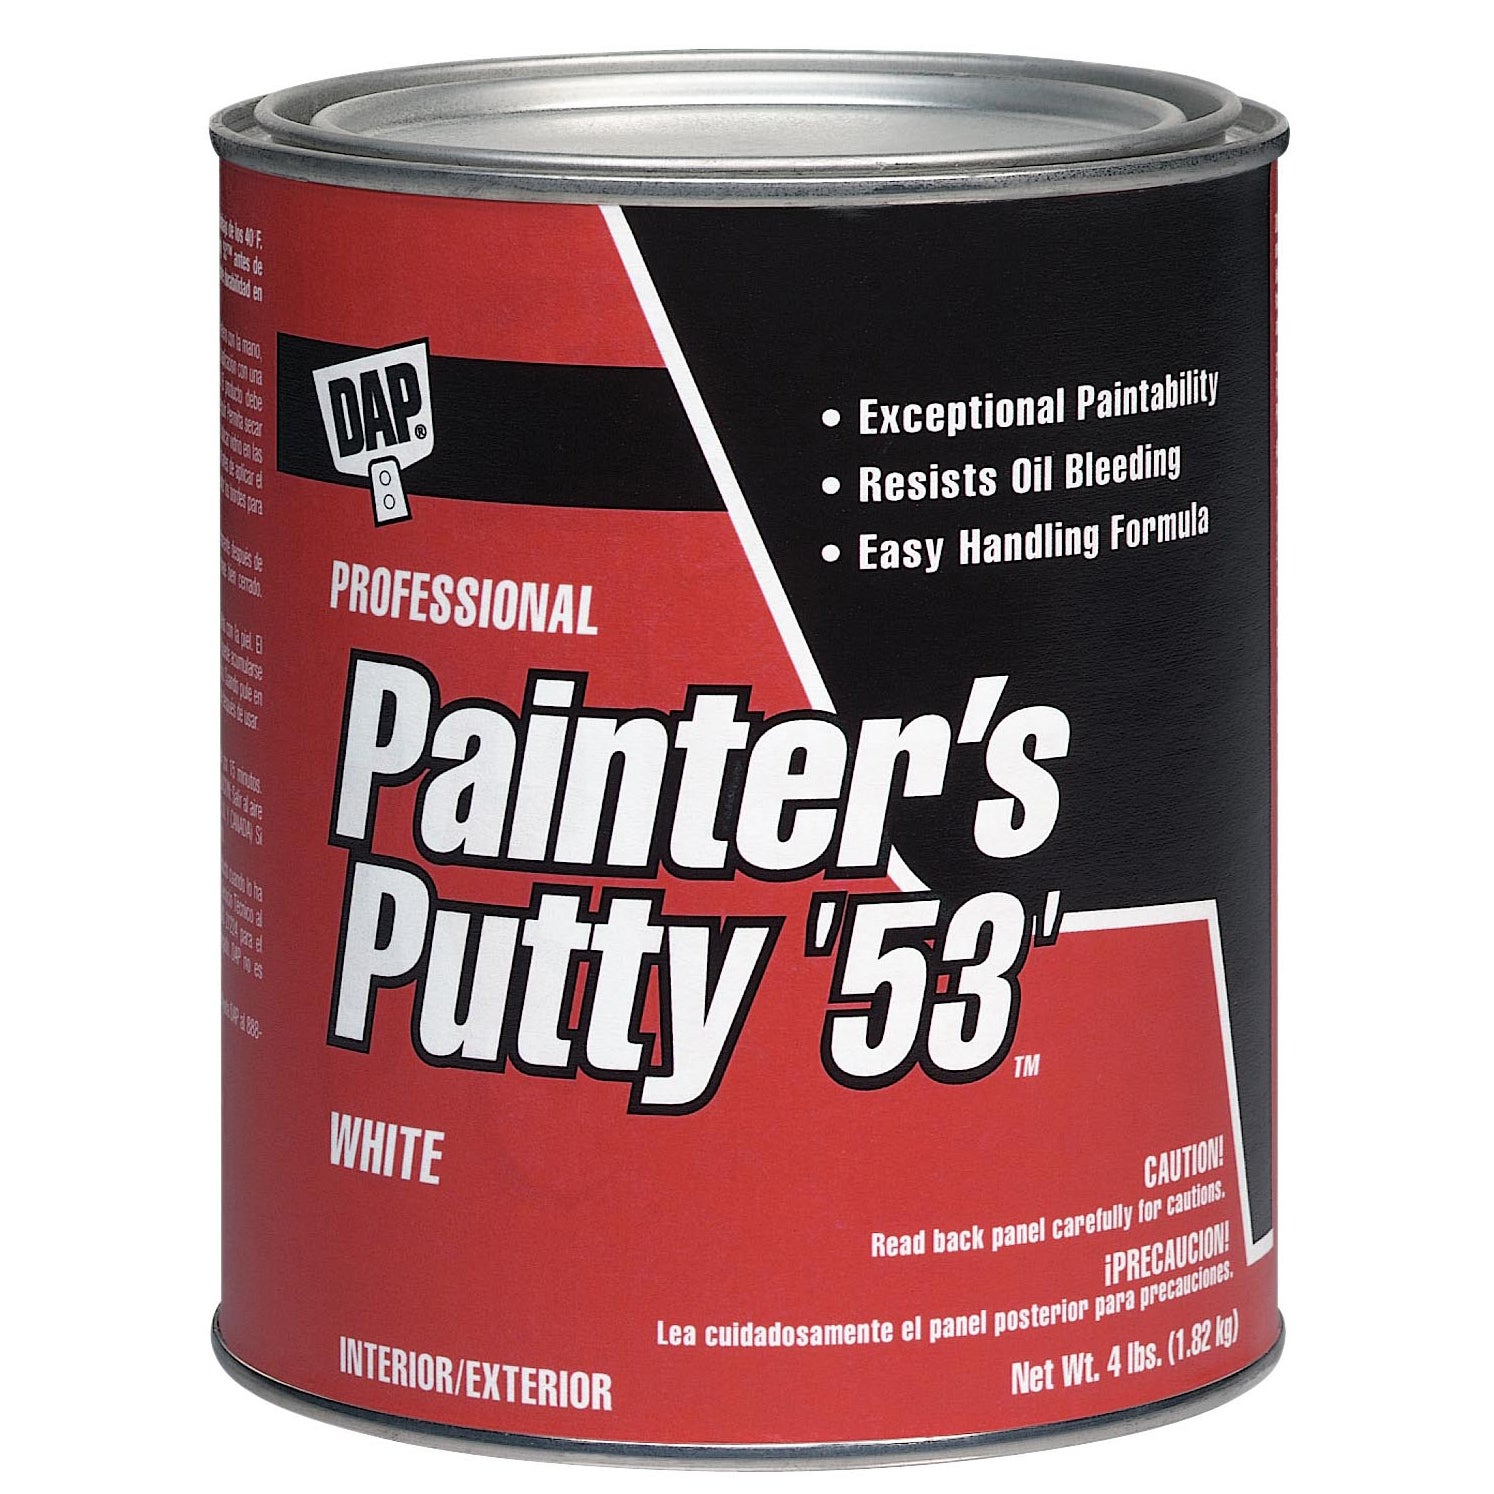 DAP 12244 1 Quart All Purpose Painter's Putty (Pink) Inte...